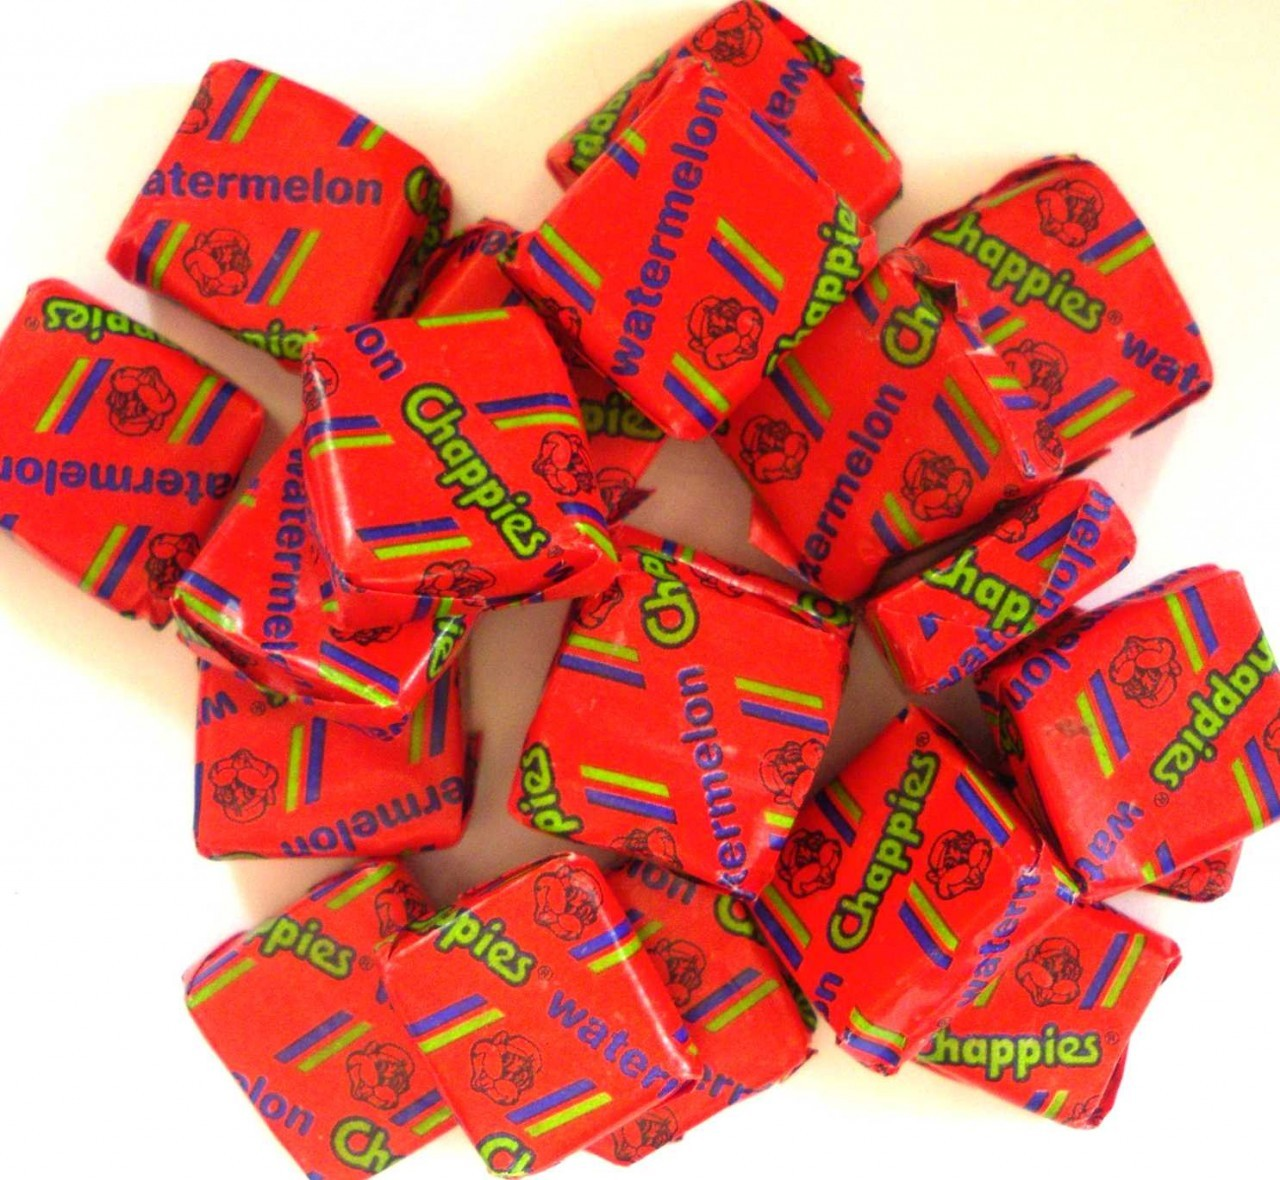 Chappies Watermelon Gum - Pack Of 20